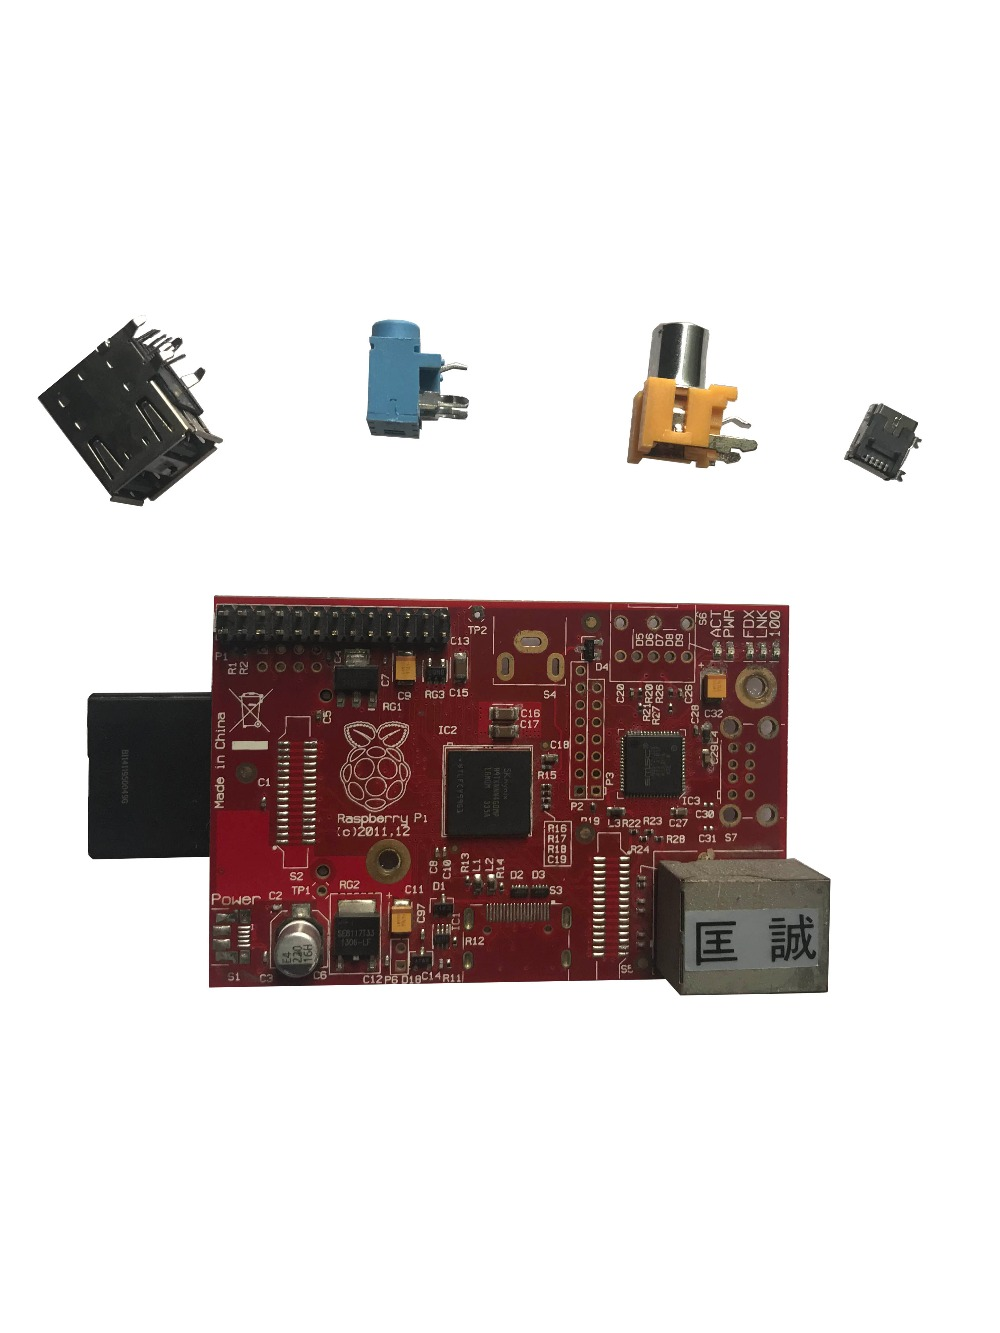 Raspberry Pie Model B 512MB RAM 8g SD Card + The Combination Of Electronic Components